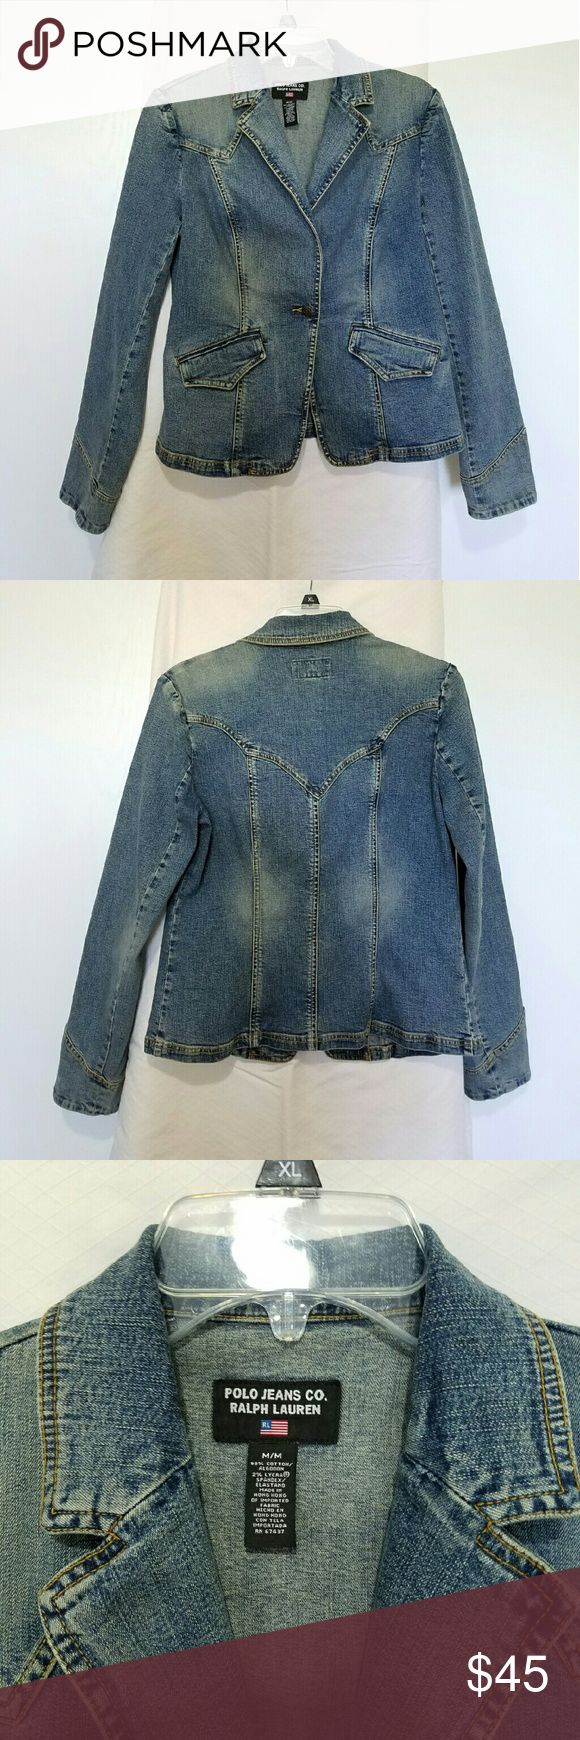 Polo Jeans Co. Ralp Lauren Jean Jacket Polo Jeans Co. Ralp Lauren Jean Jacket. Size M. Has two front pockets. Very stylish with lightly distressed look. In very good condition. *Smoke Free home* Polo Jeans Co. Ralp Lauren Jackets & Coats Jean Jackets